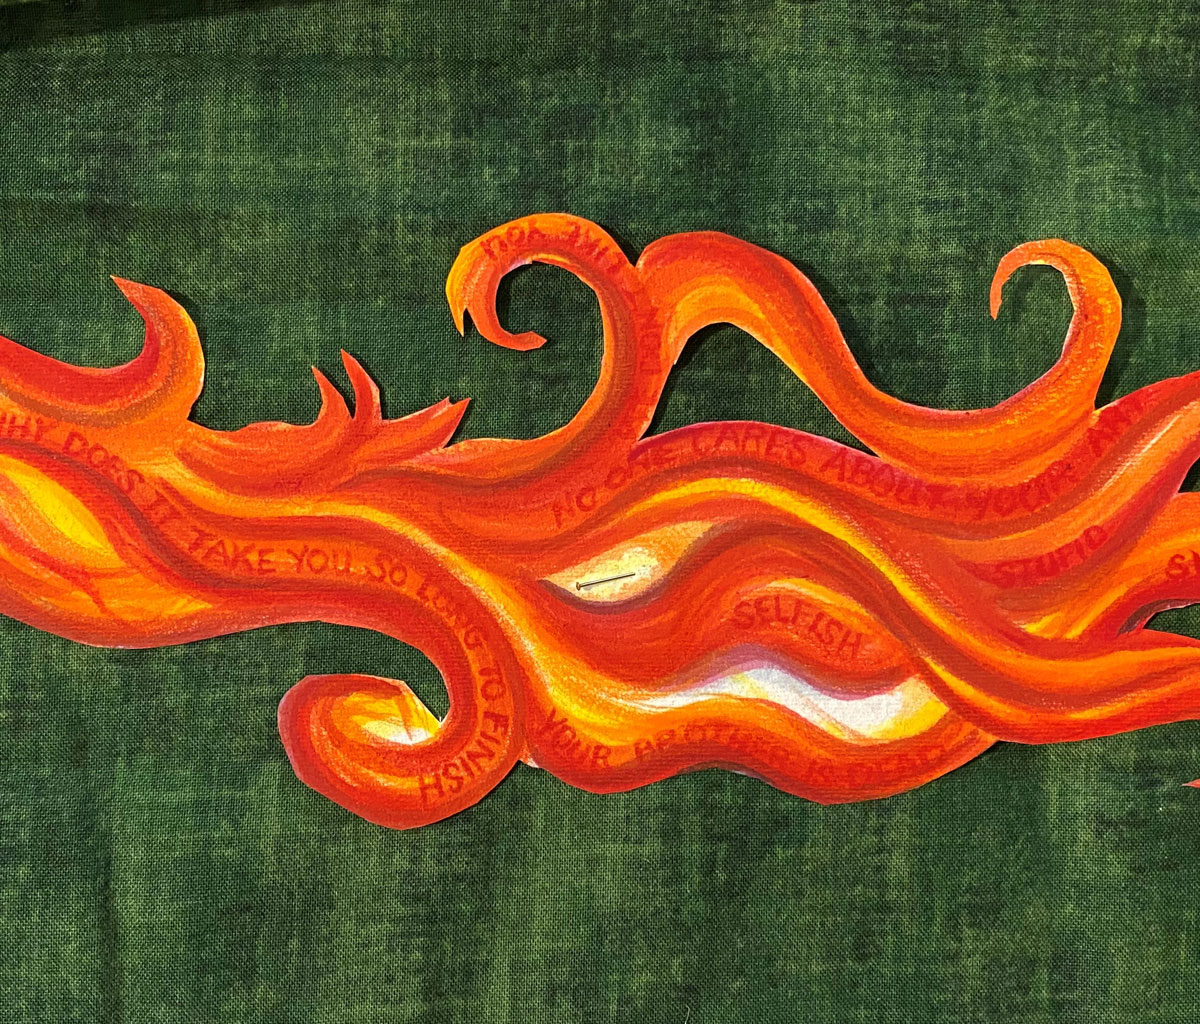 a painted flame